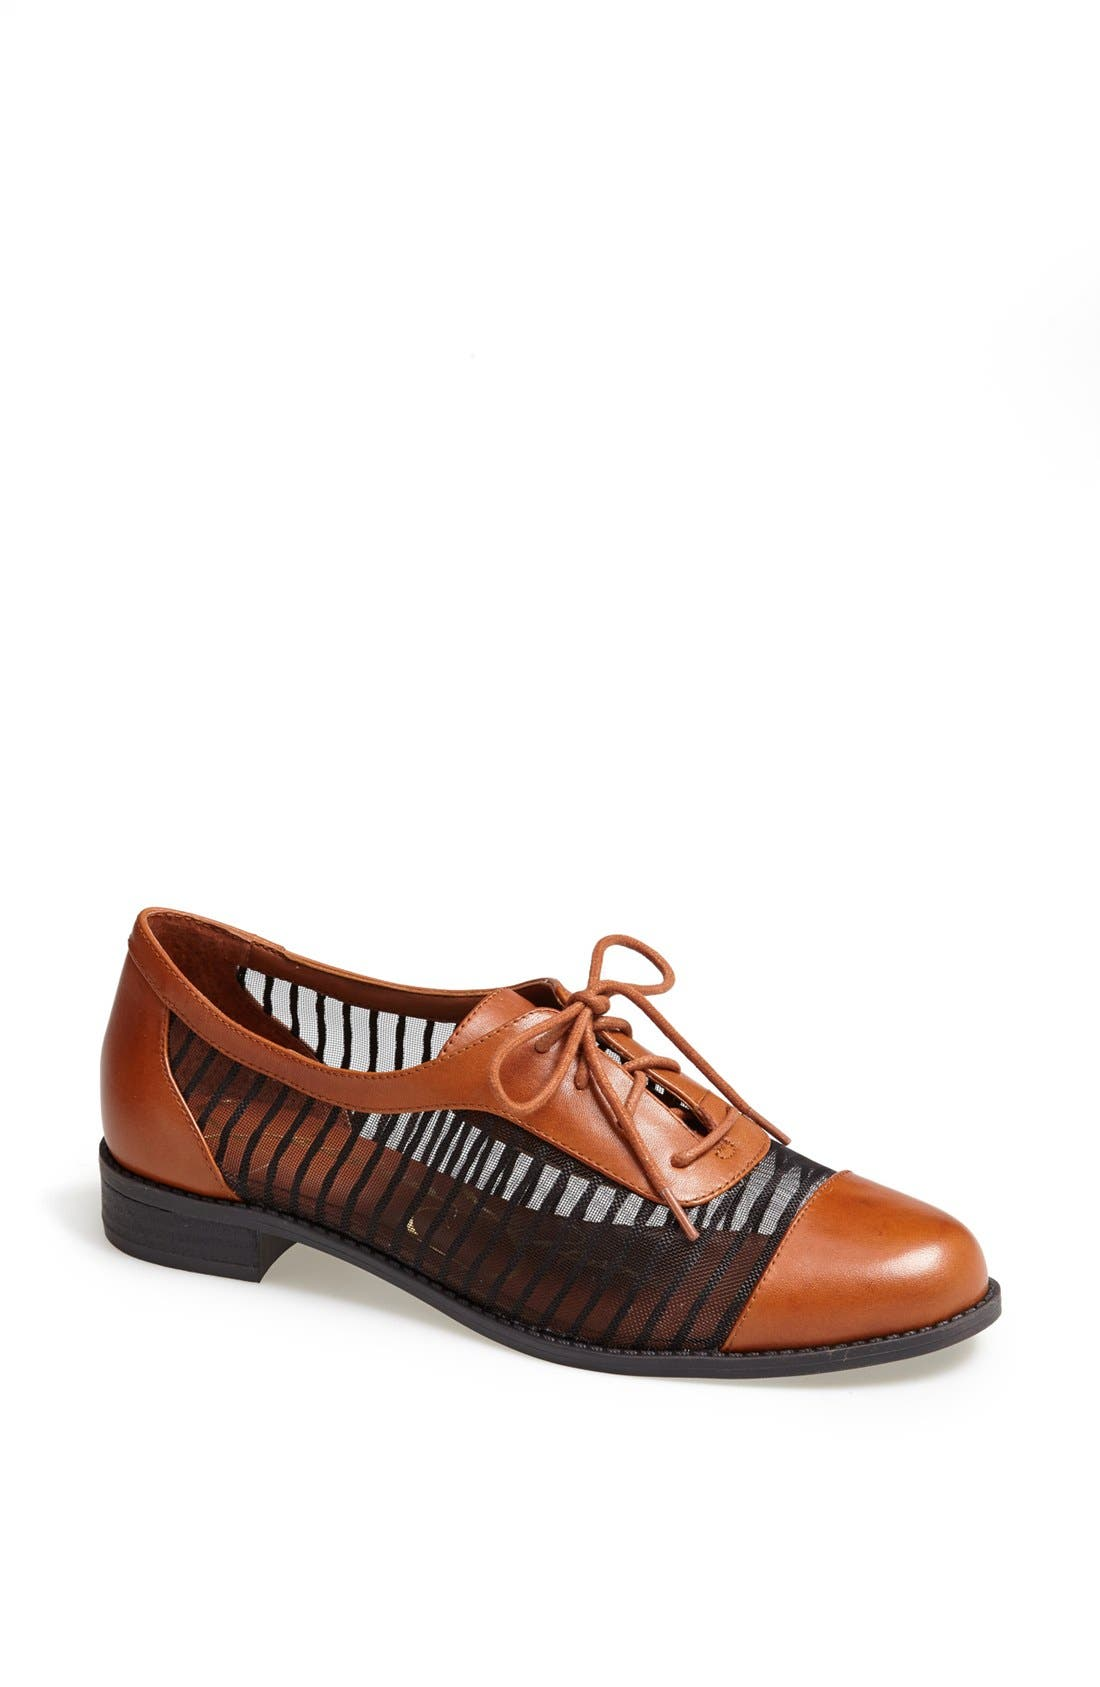 Alternate Image 1 Selected - Jessica Simpson 'Tallinoh' Oxford